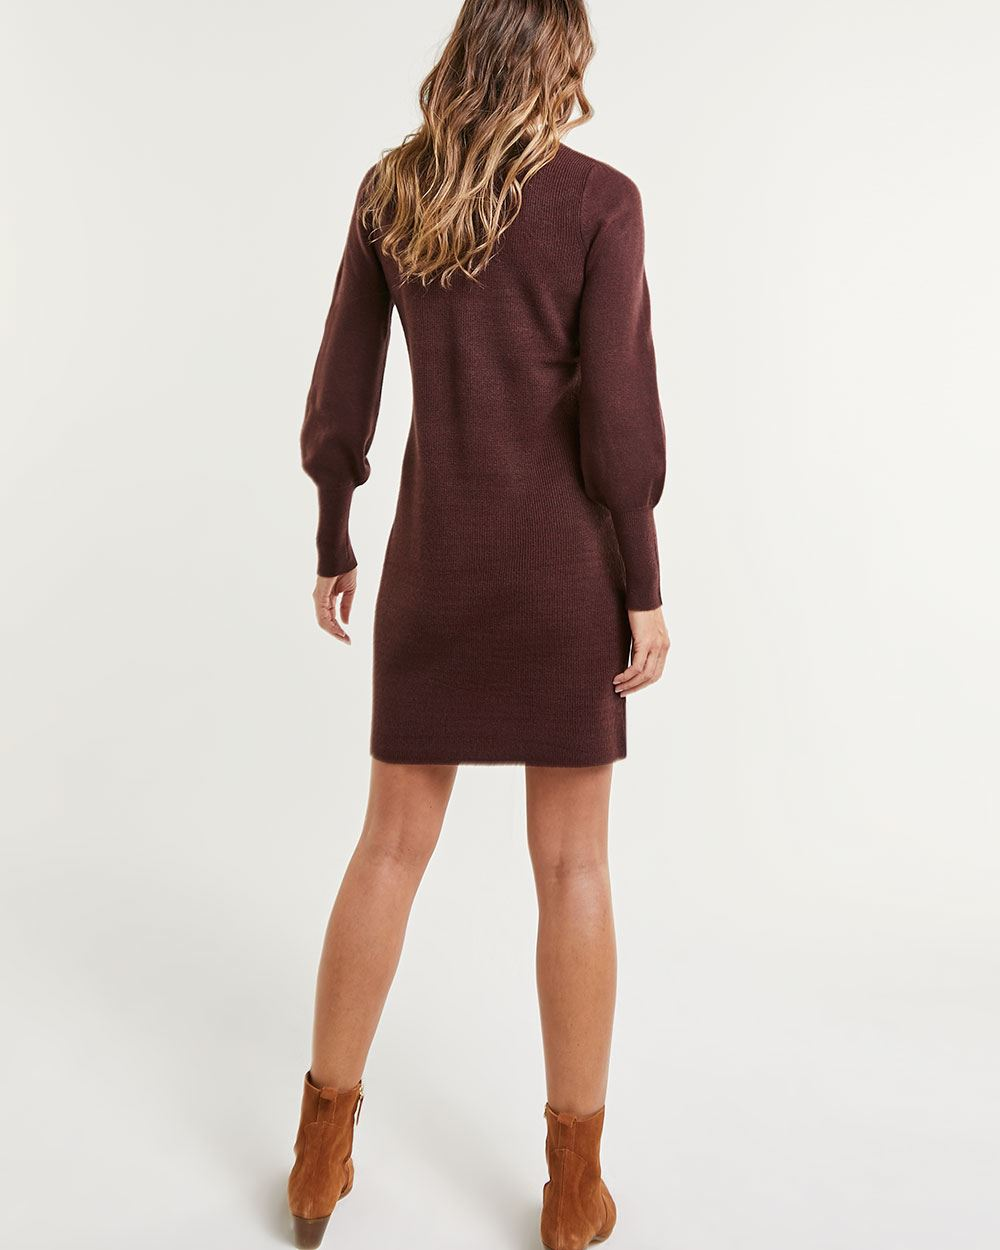 Puffed Sleeve Bodycon Dress with Buttons at Shoulders